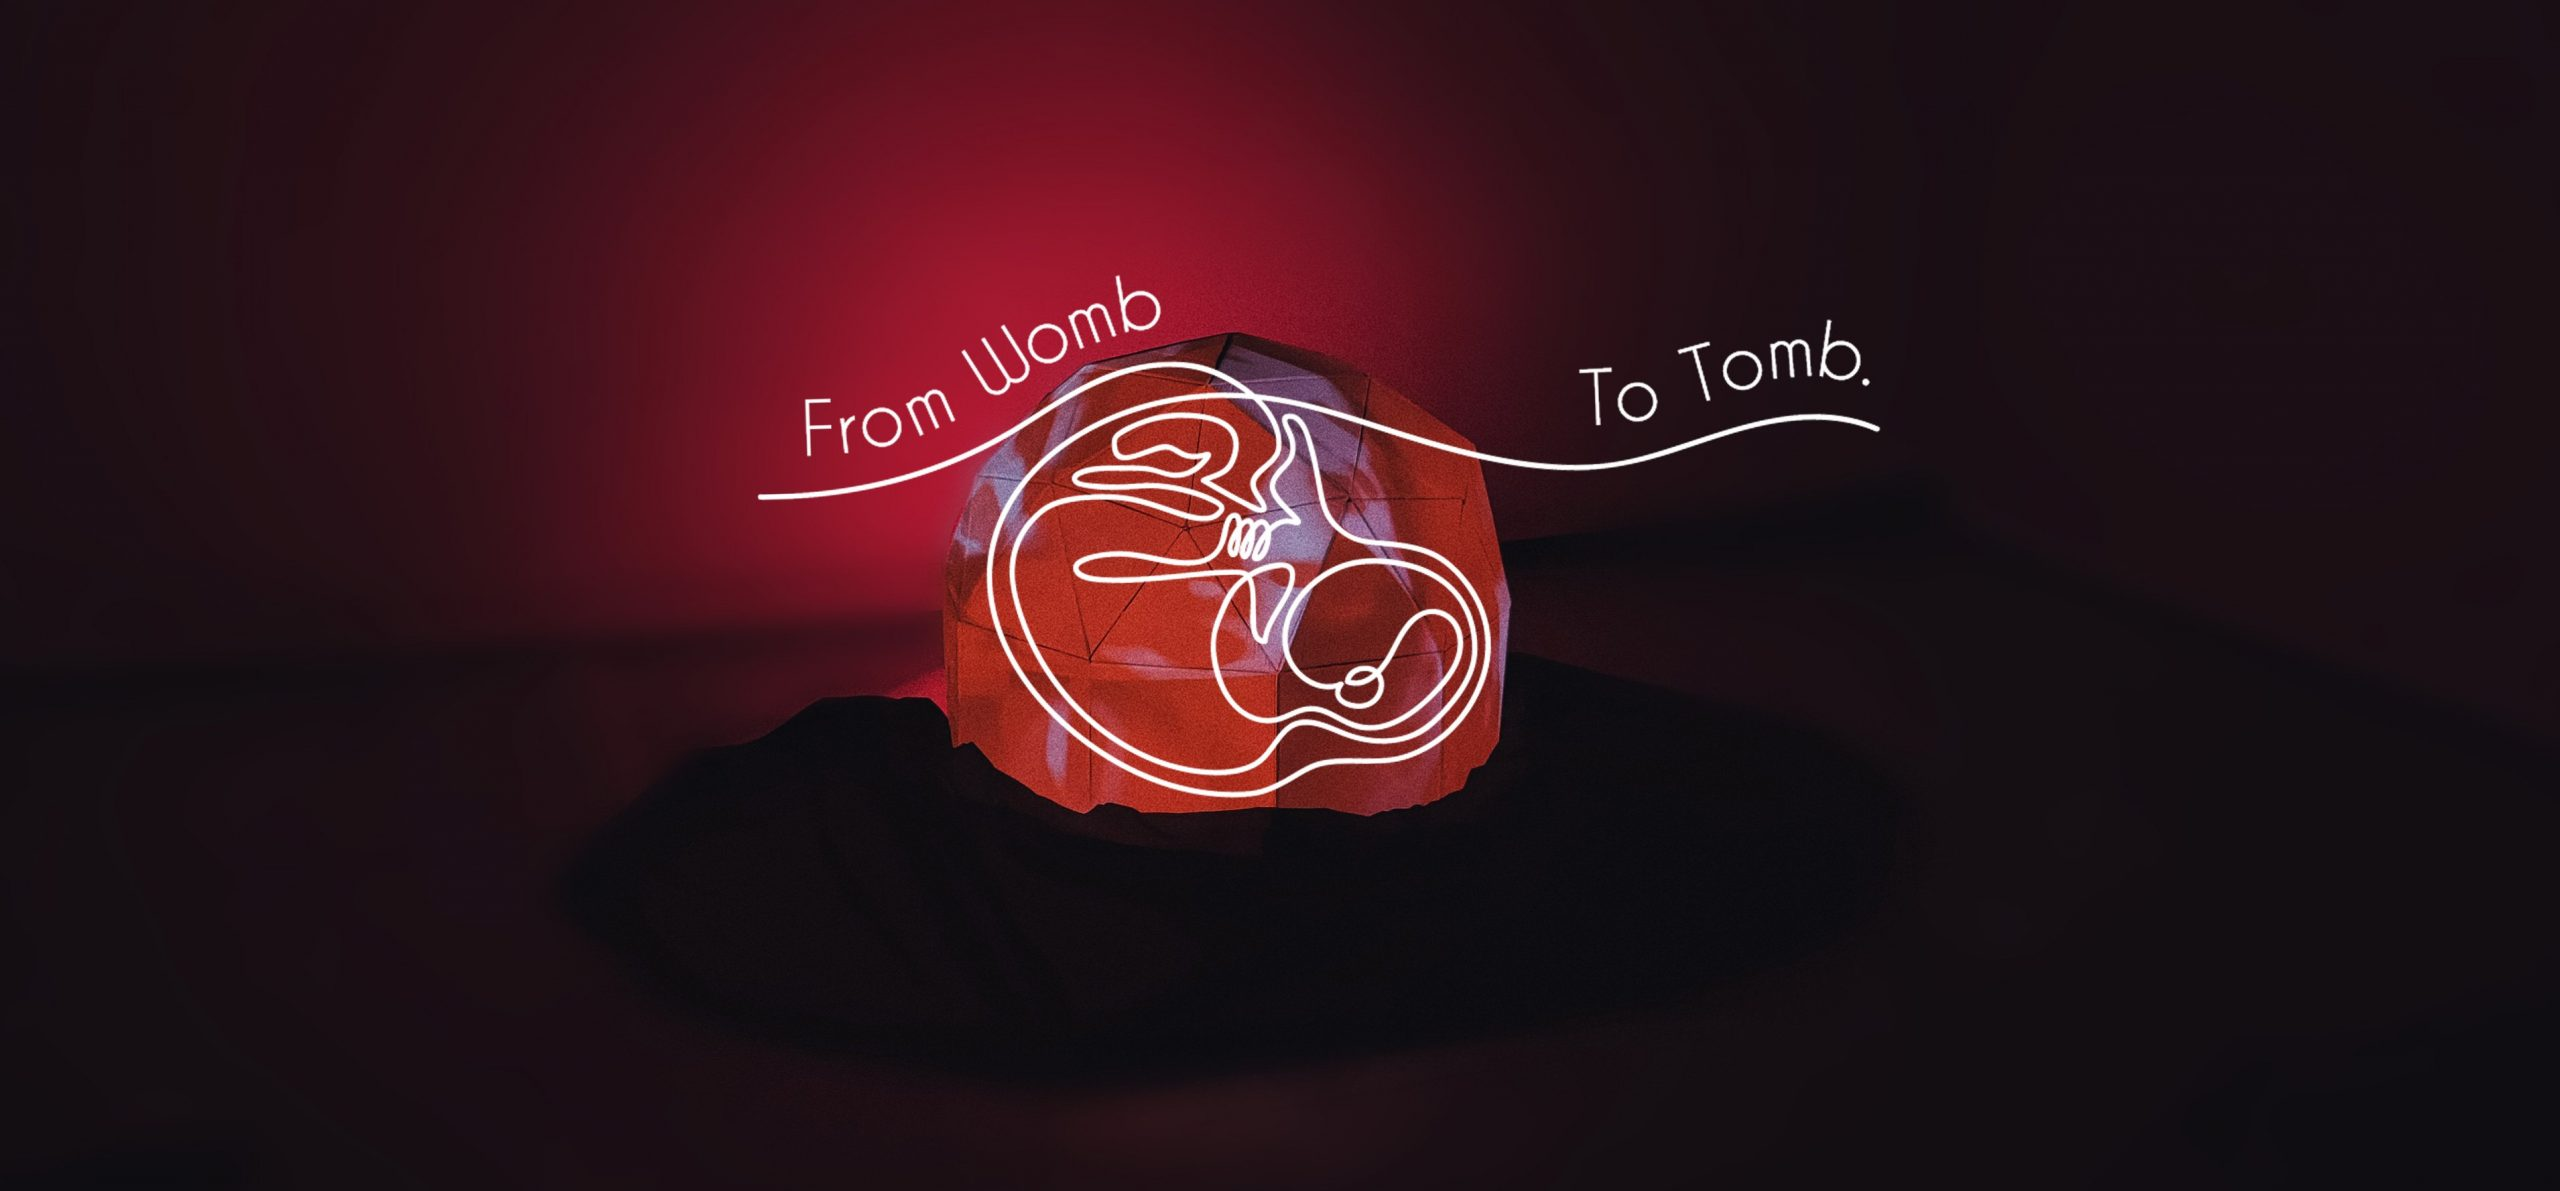 From Womb To Tomb [Final]